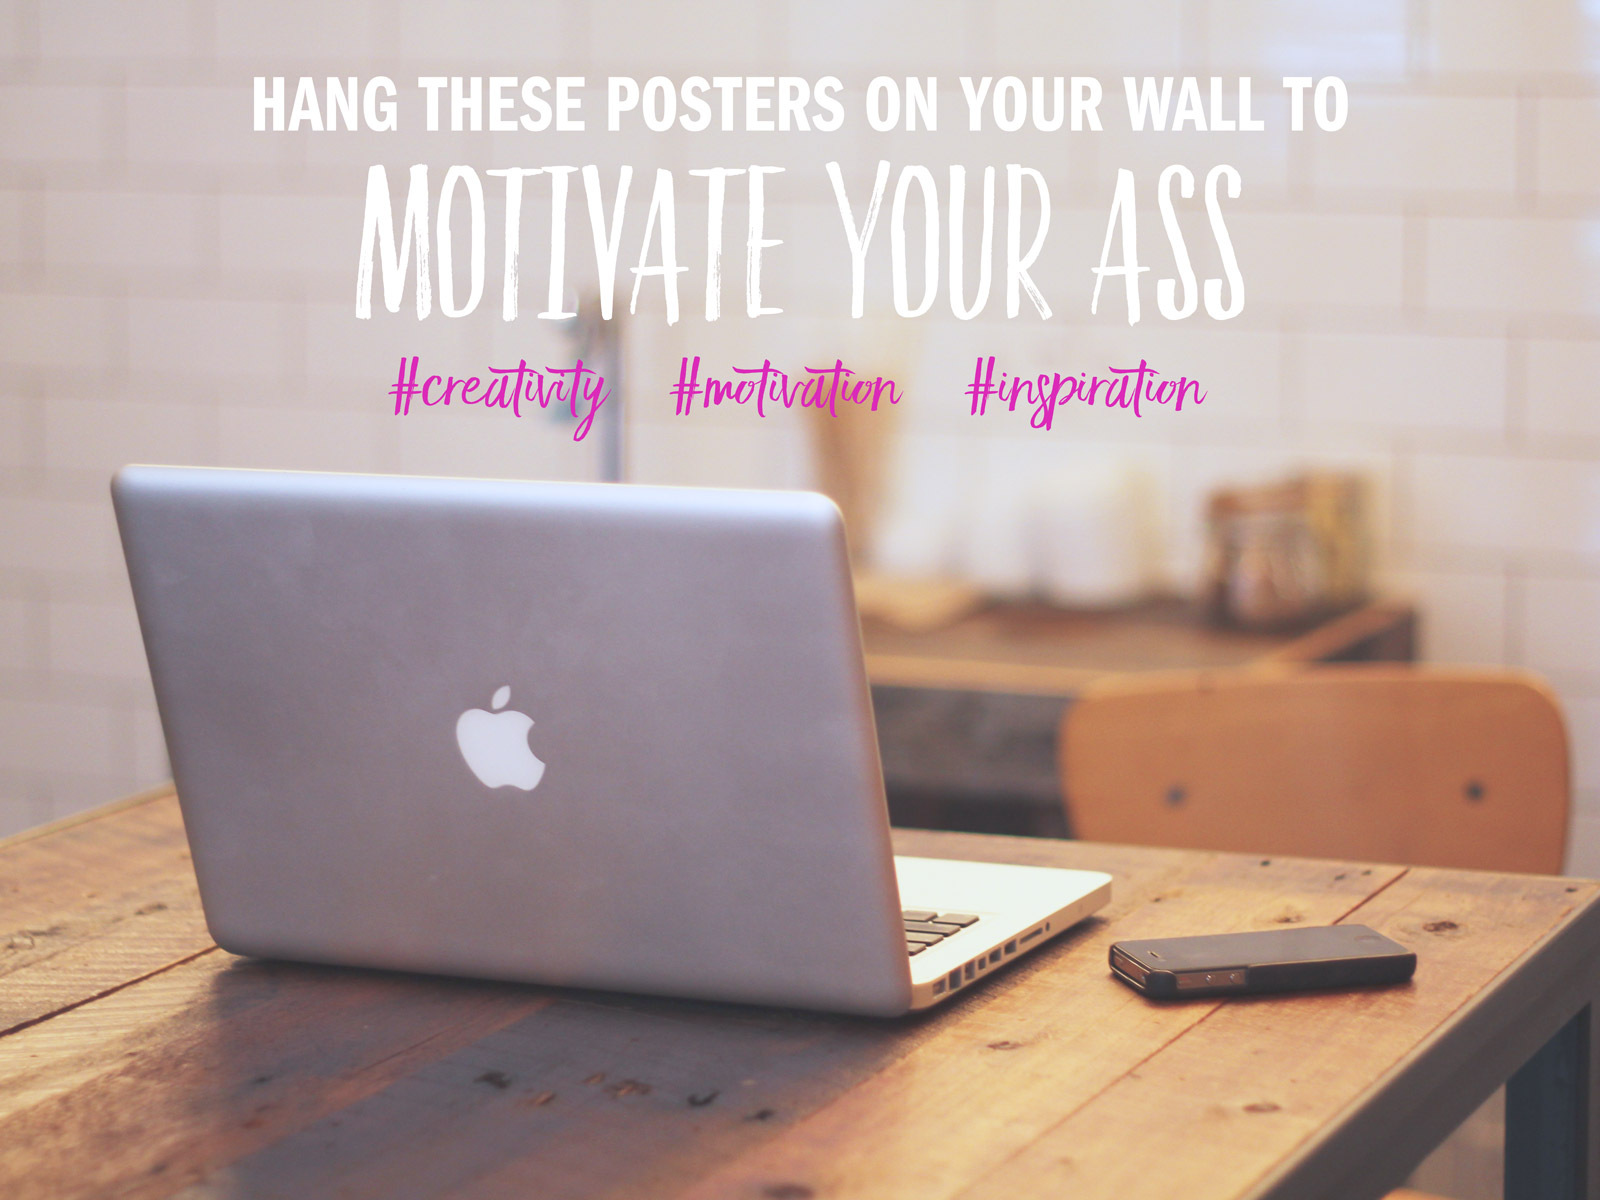 Motivational posters to motivate your creative self!